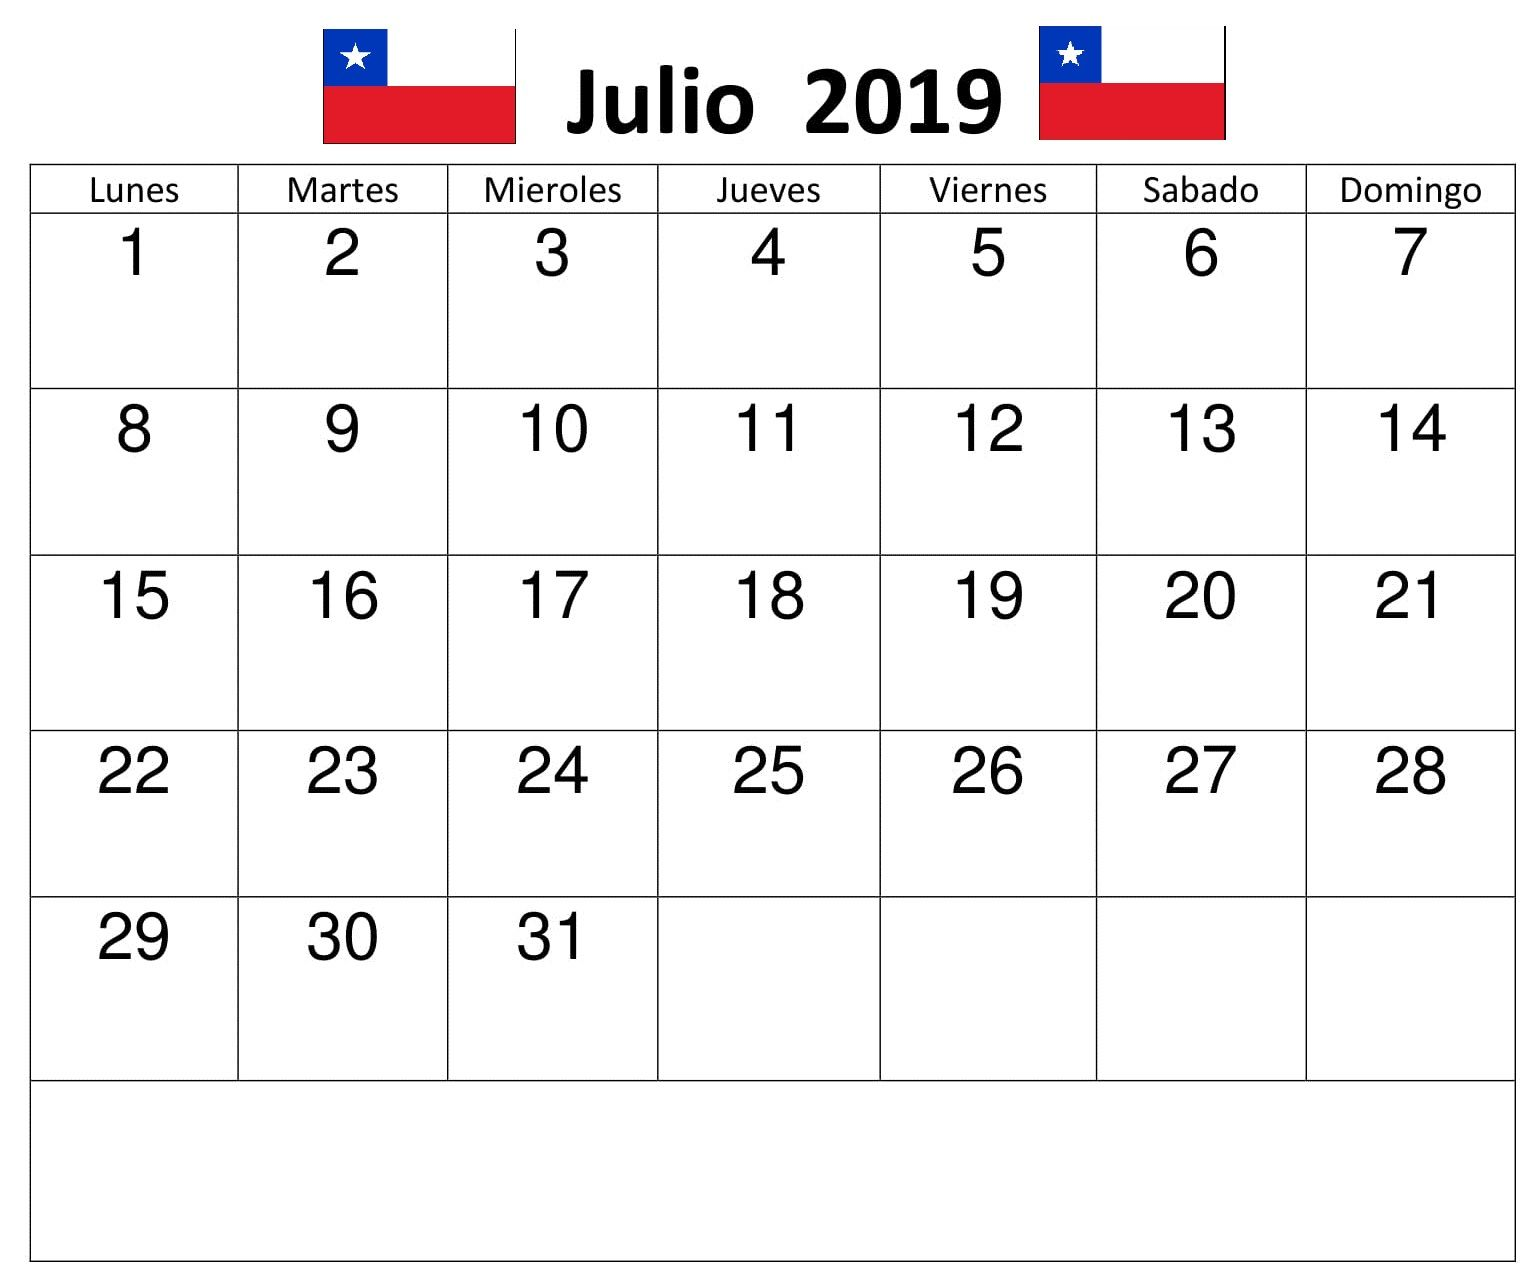 Calendario Julio 2019 Grande.Gratis Calendario Julio 2019 Chile Calendario Julio 2019